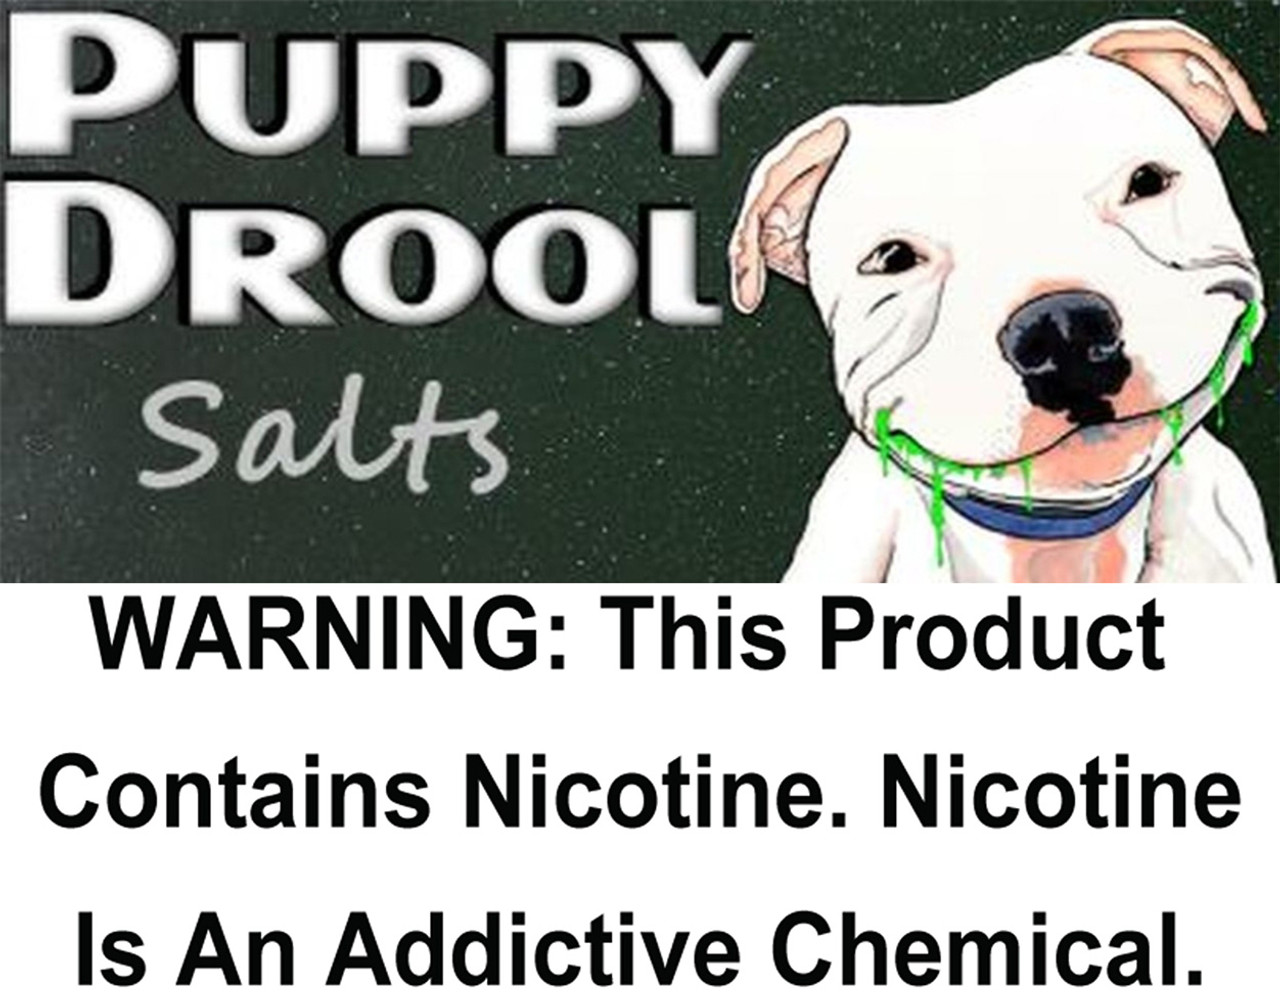 Puppy Drool - Salt Nicotine 30ml